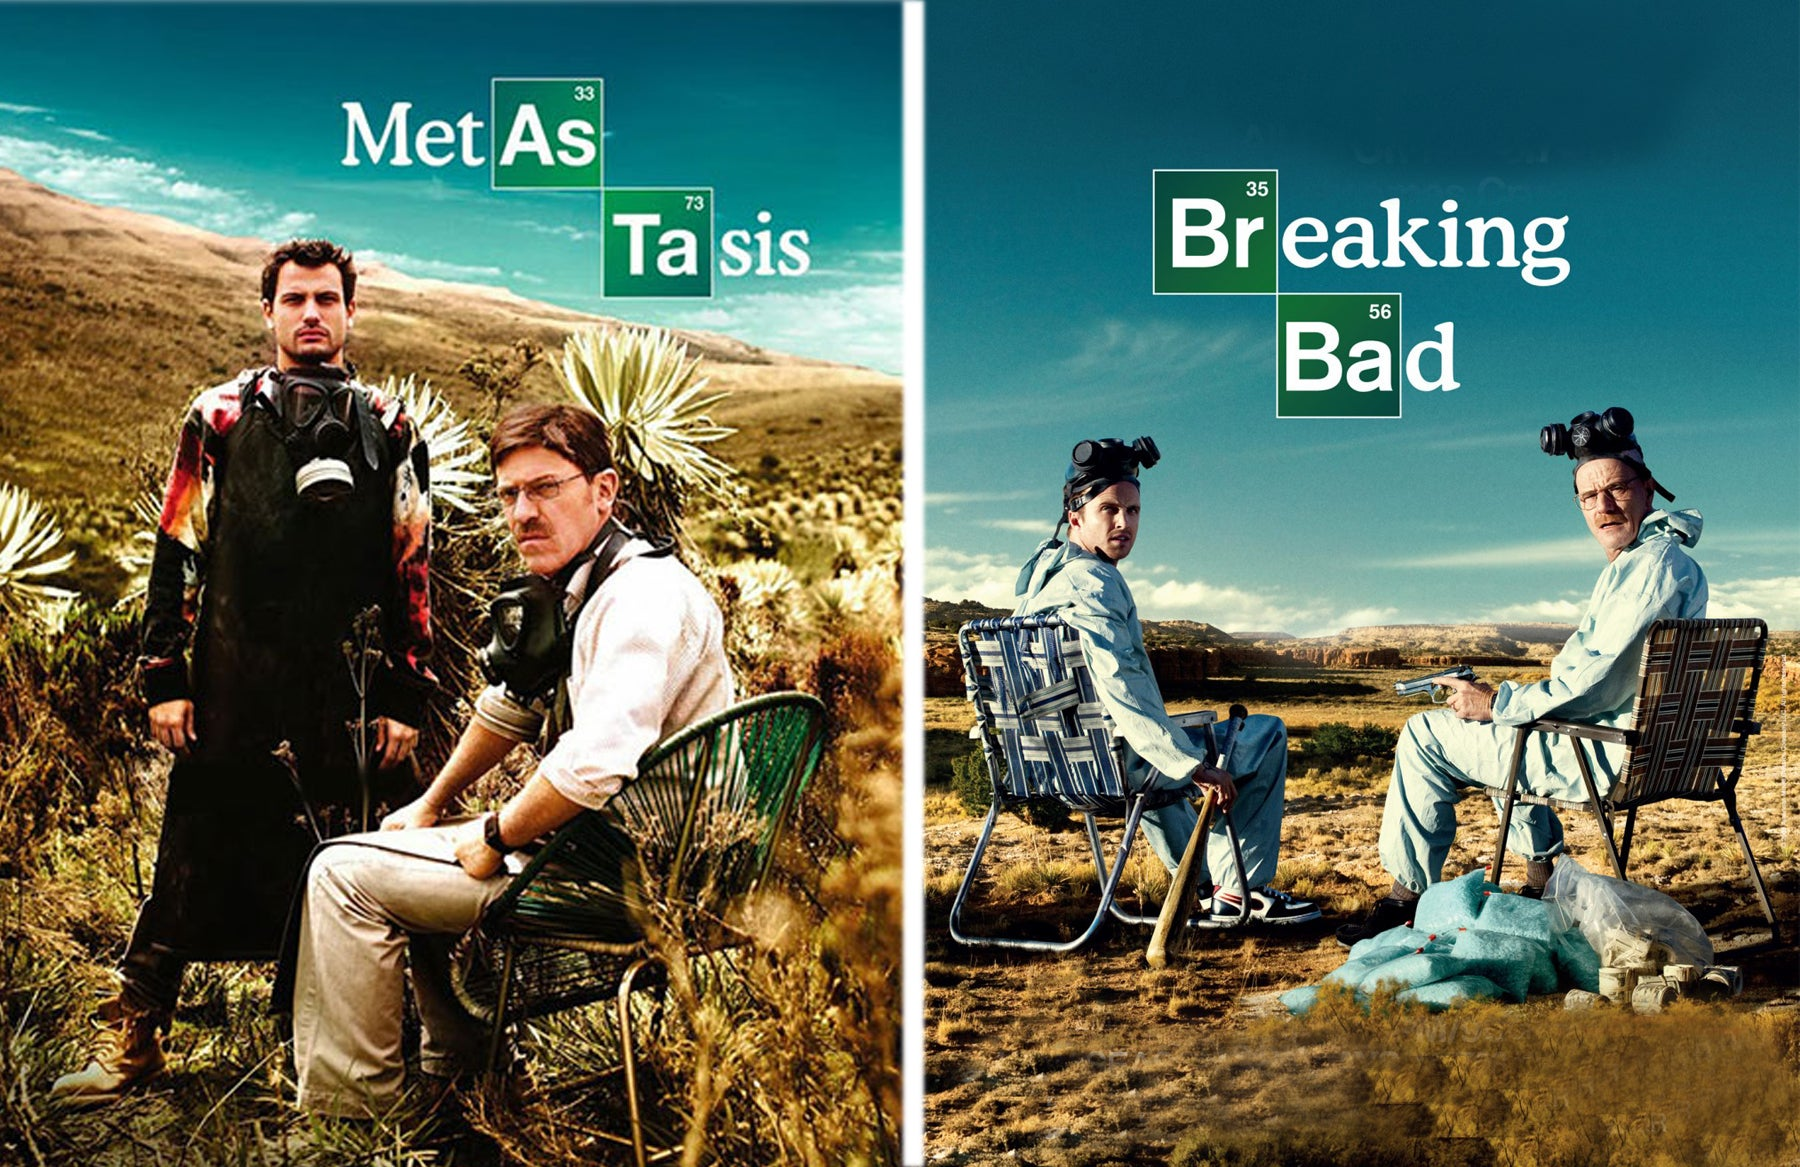 Metástasis and Breaking Bad posters